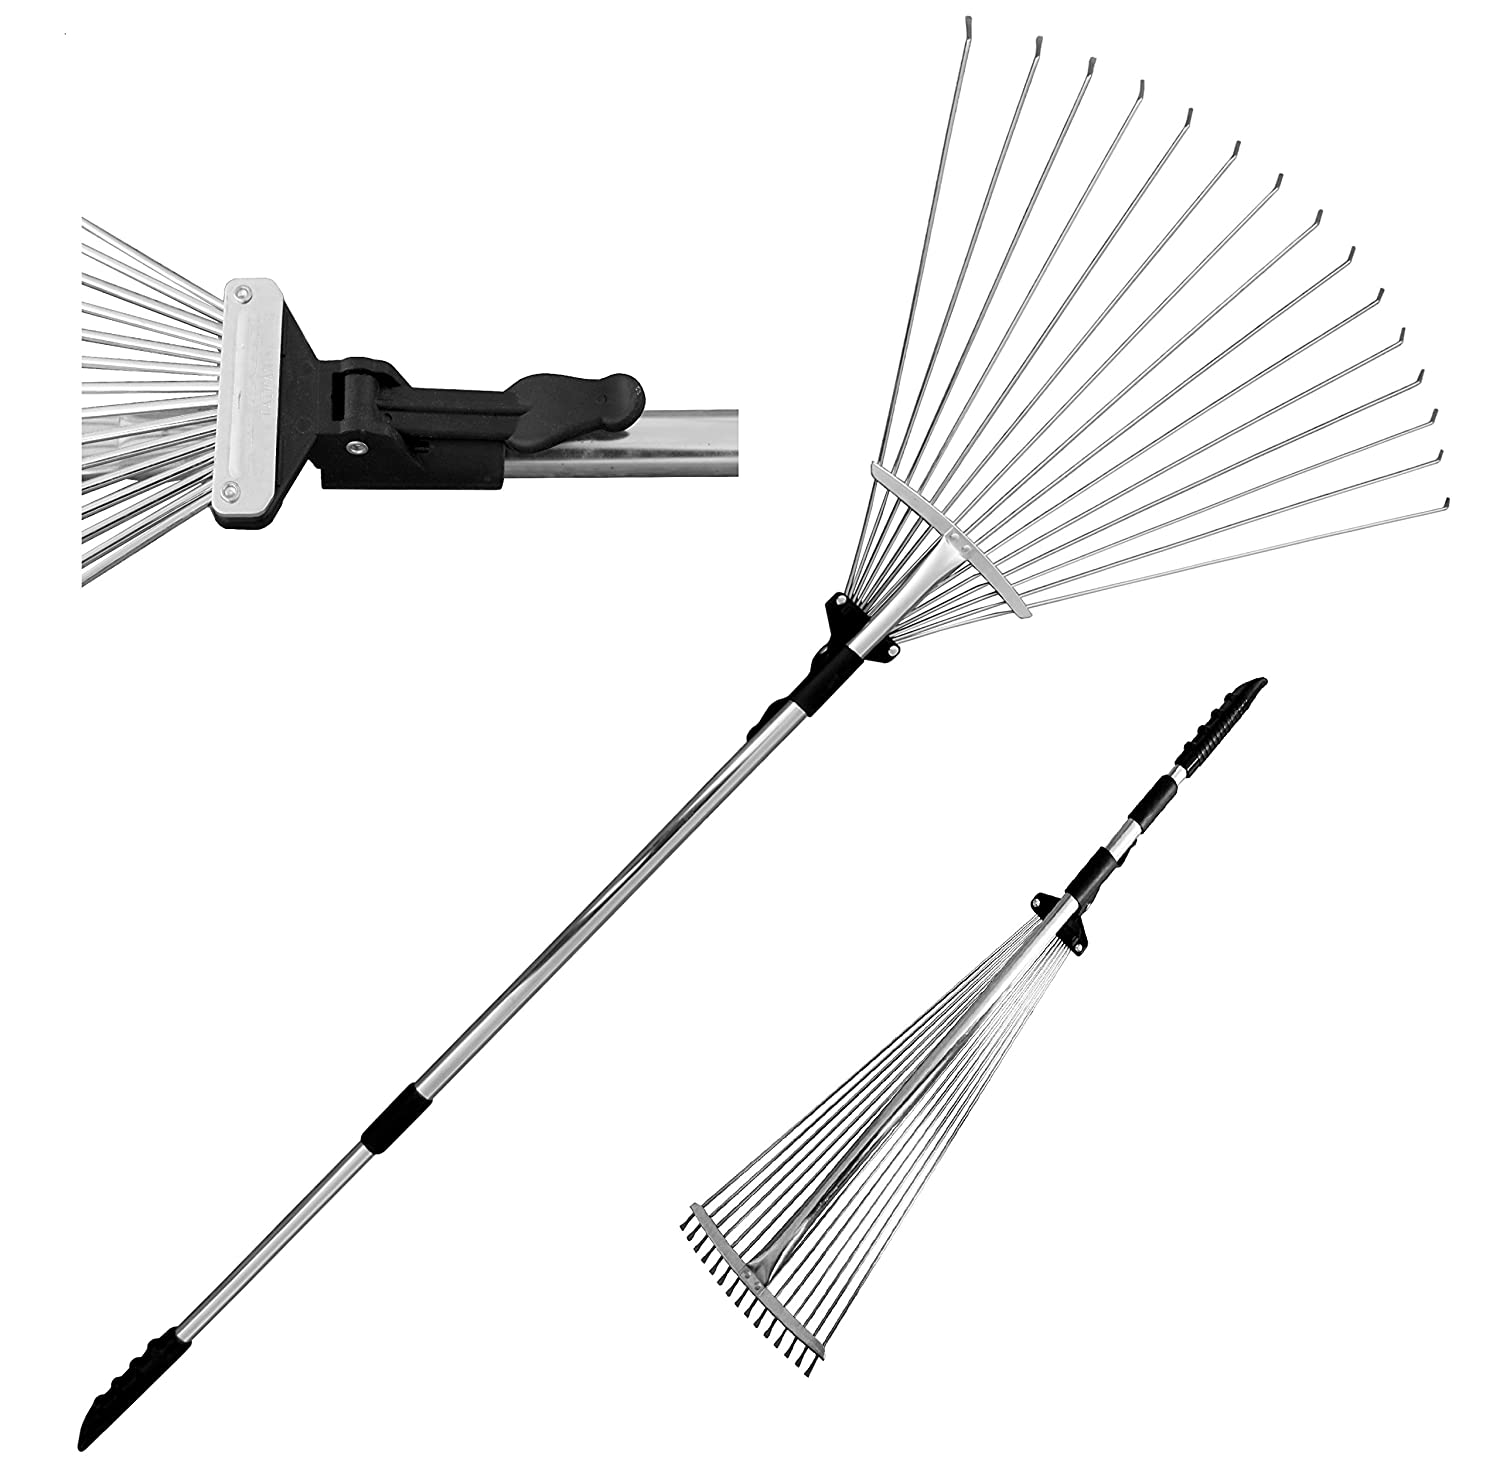 "TABOR TOOLS J16A Telescopic Metal Rake 63"", Adjustable Folding Leaves Rake for Quick Clean Up of Lawn and Yard, Garden Leaf Rake, Expanding Handle with Adjustable 8""- 23"" Folding Head"